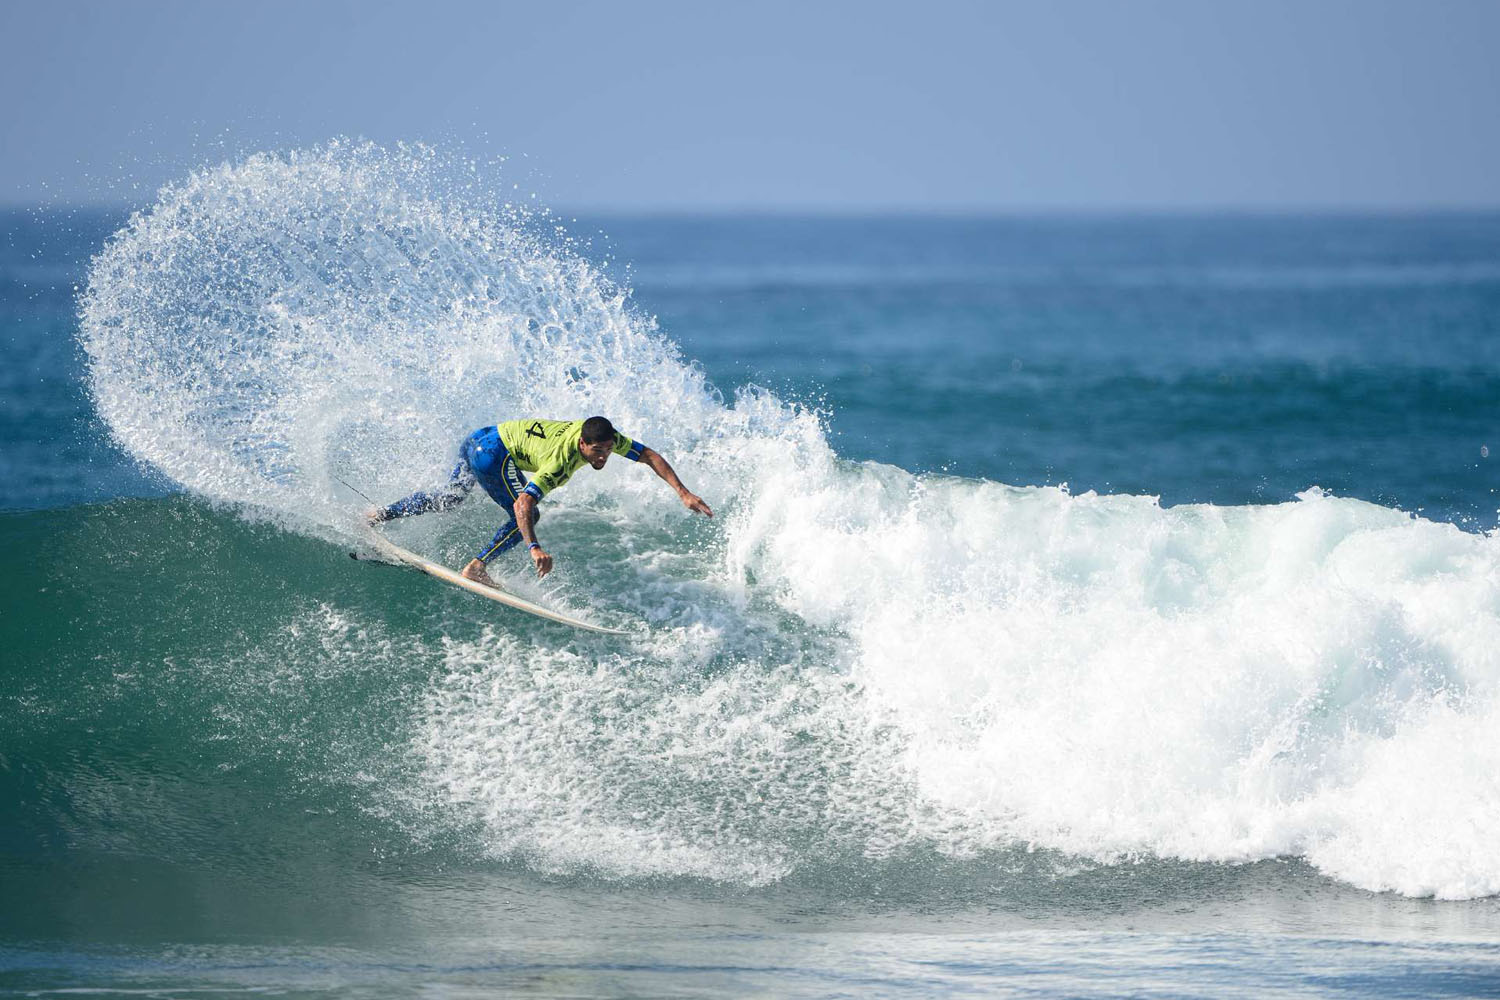 Kelly Slater wins his 50th ASP tour victory